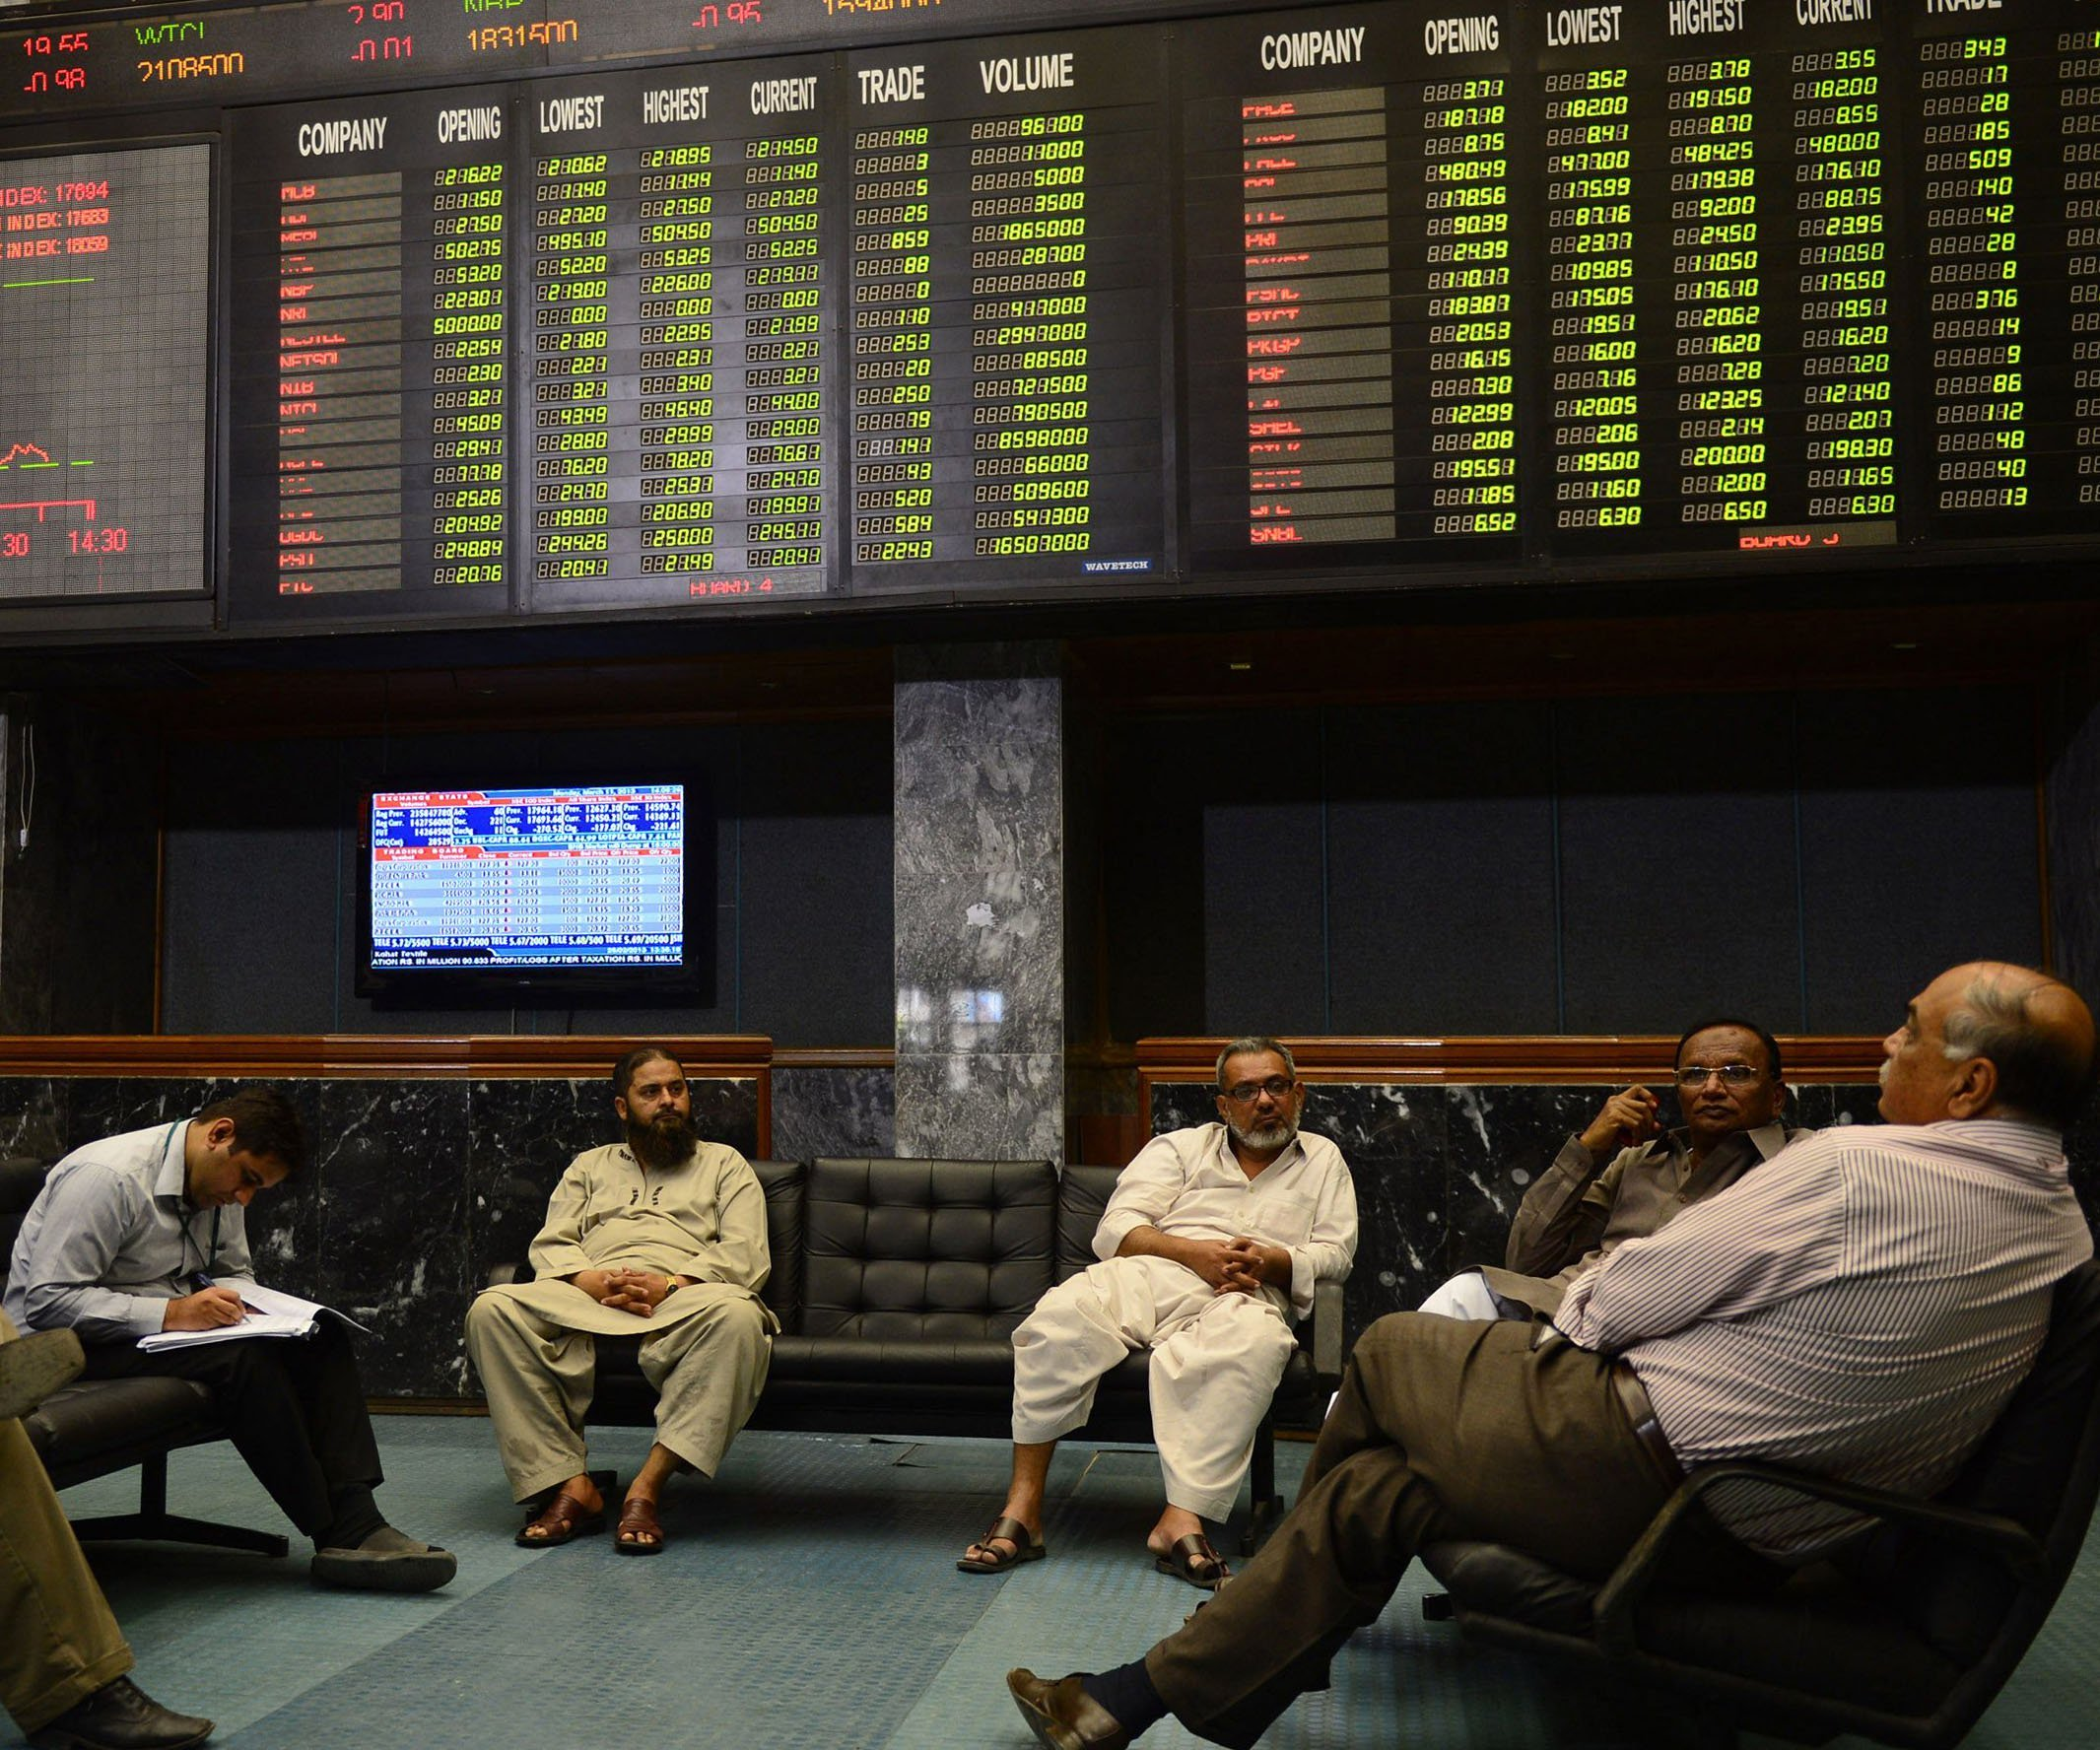 market watch stocks rally as index surpasses 35 000 points